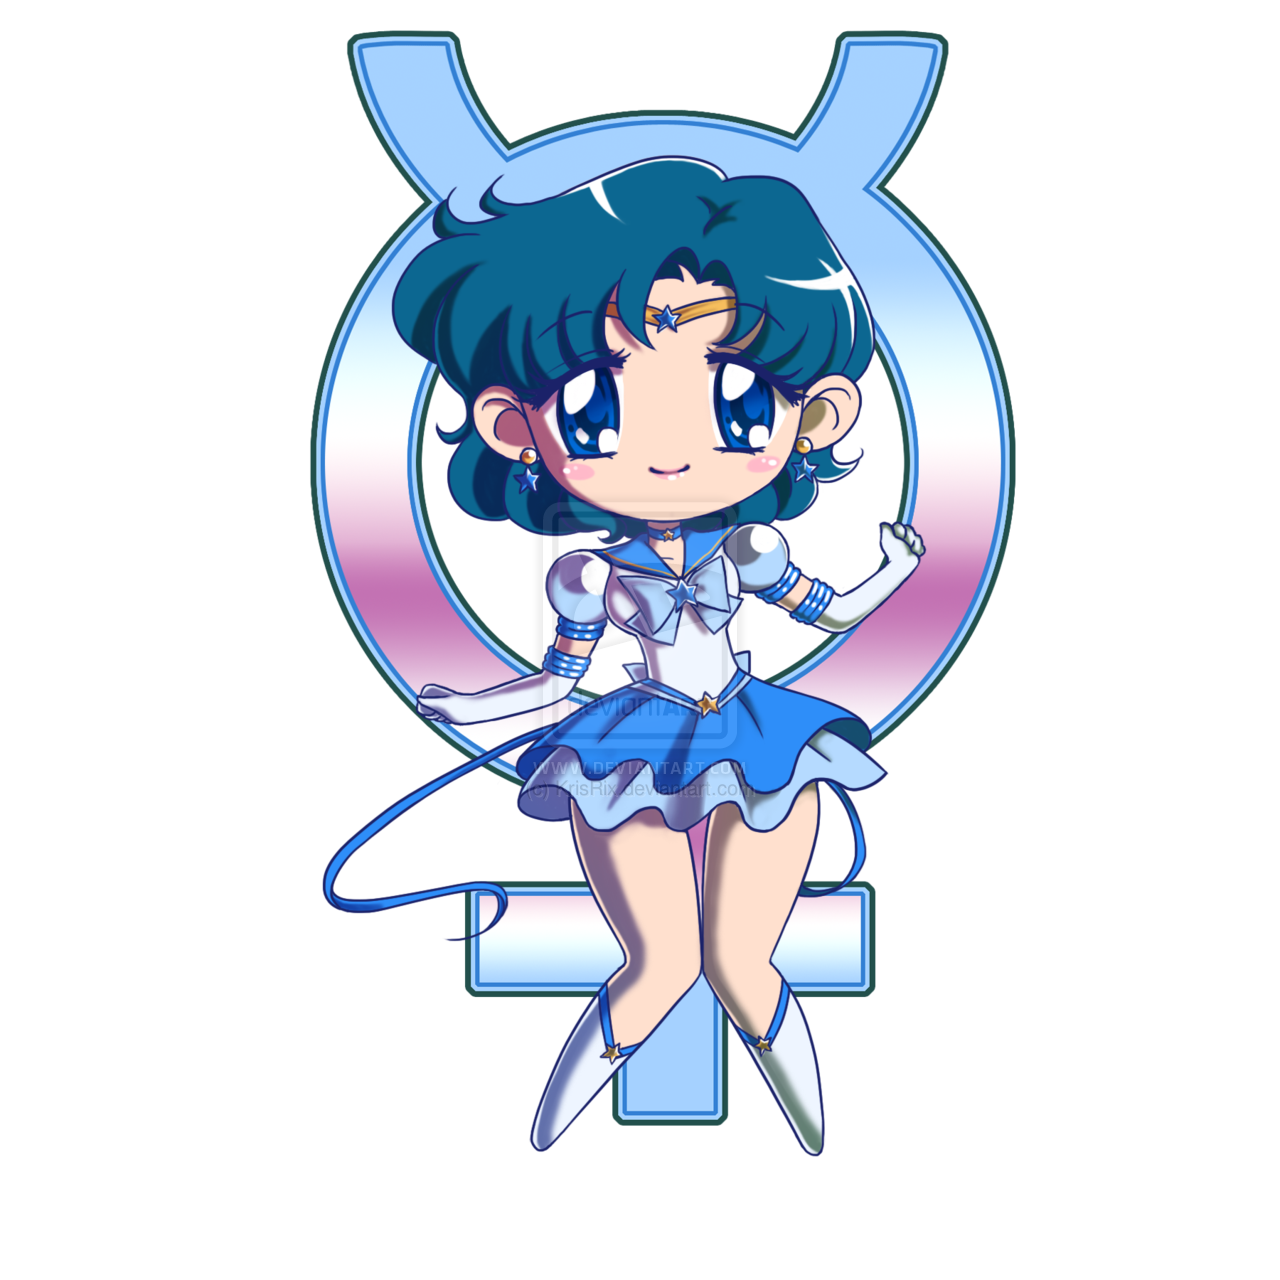 Sailoreverything I Really Like The Way Their Bodies Are Drawn Here Sailor Senshi Luna Amy